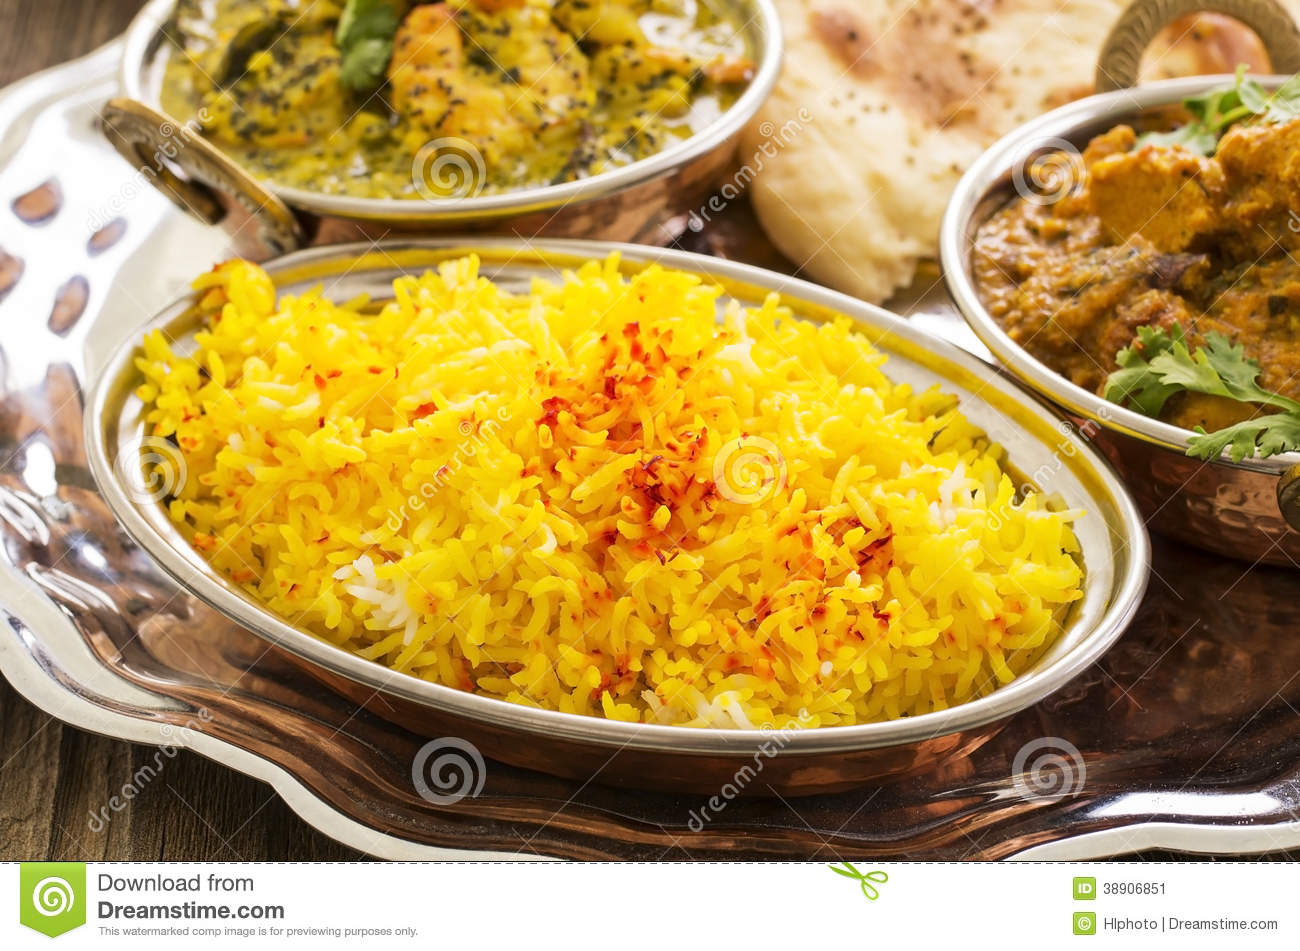 Saffron Rice Stock Photo - Image: 38906851